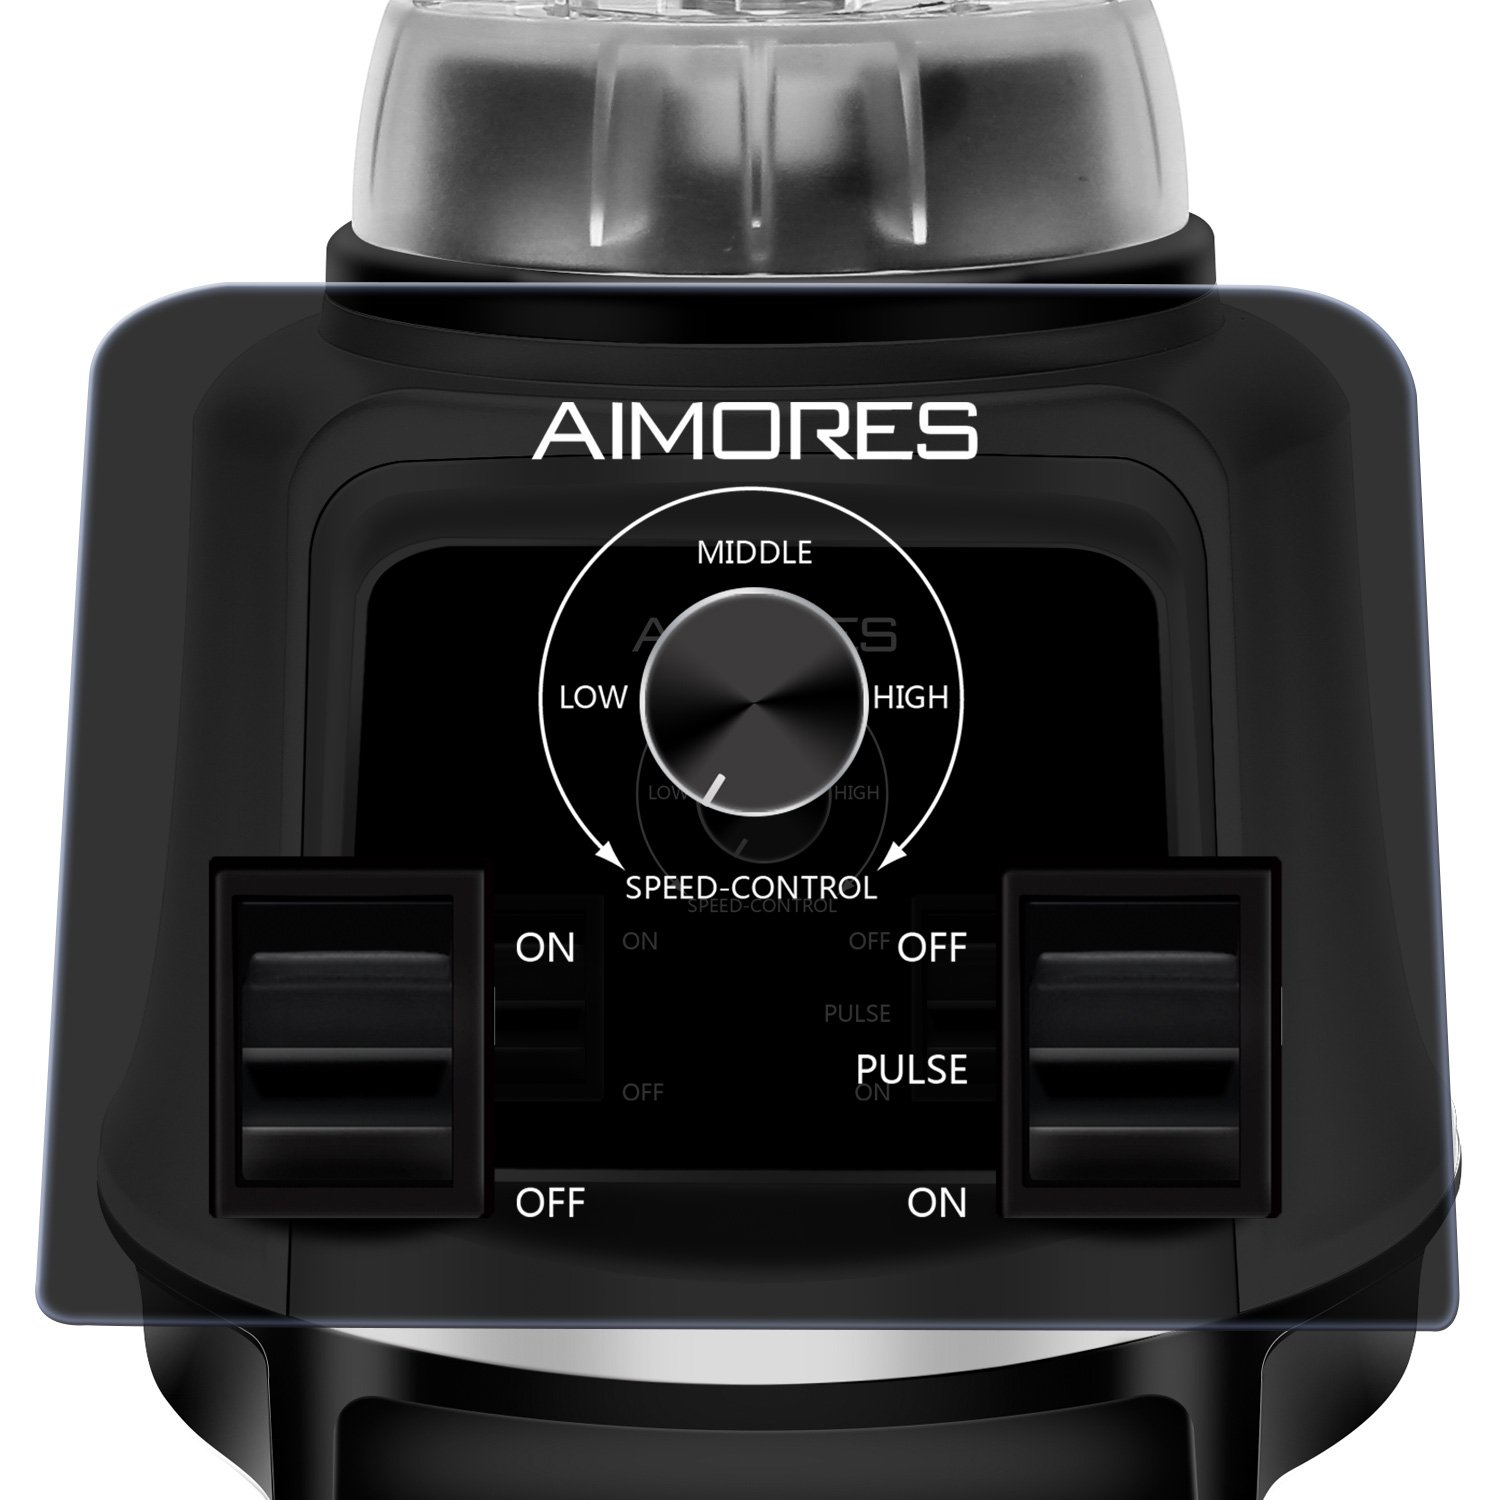 Professional Smoothie Blender Aimores | 750z High Speed Juicer, Ice Cream Maker | Optimized 6 Sharp Blades | Auto Clean & Simple Control | w/ Recipe & Tamper | ETL & FDA Certified (Silver) by ISUN (Image #2)